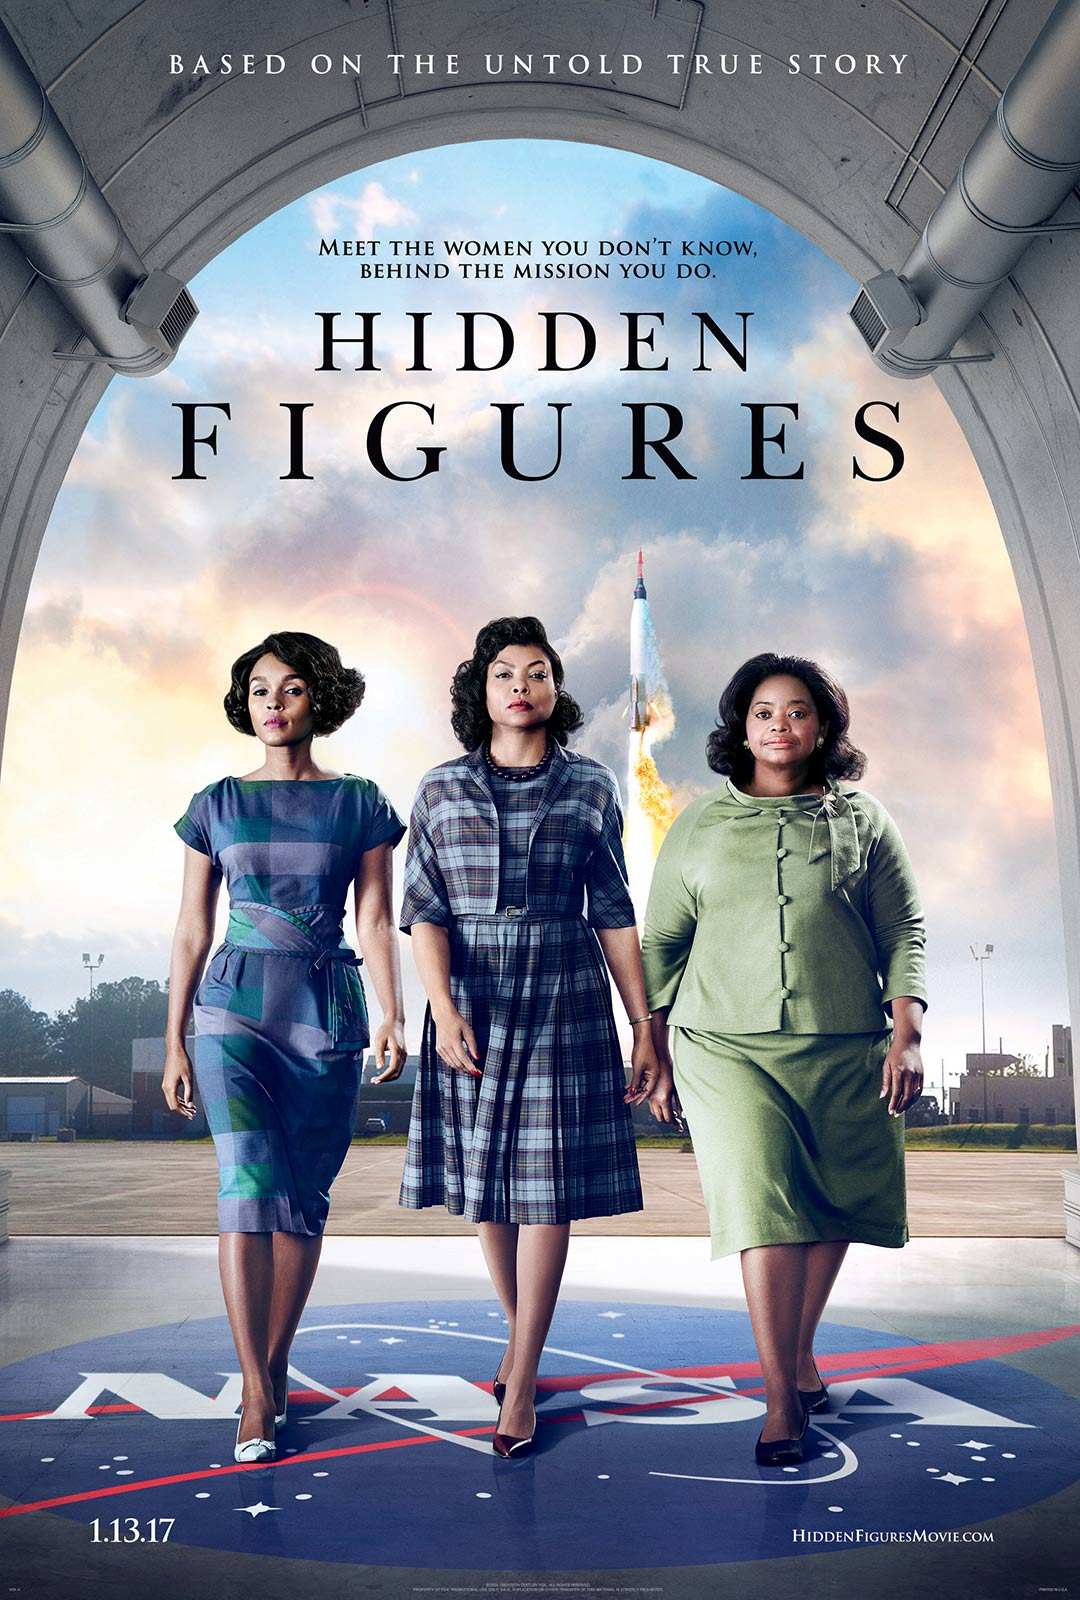 A look Inside 'Hidden Figures' with Director Ted Melfi